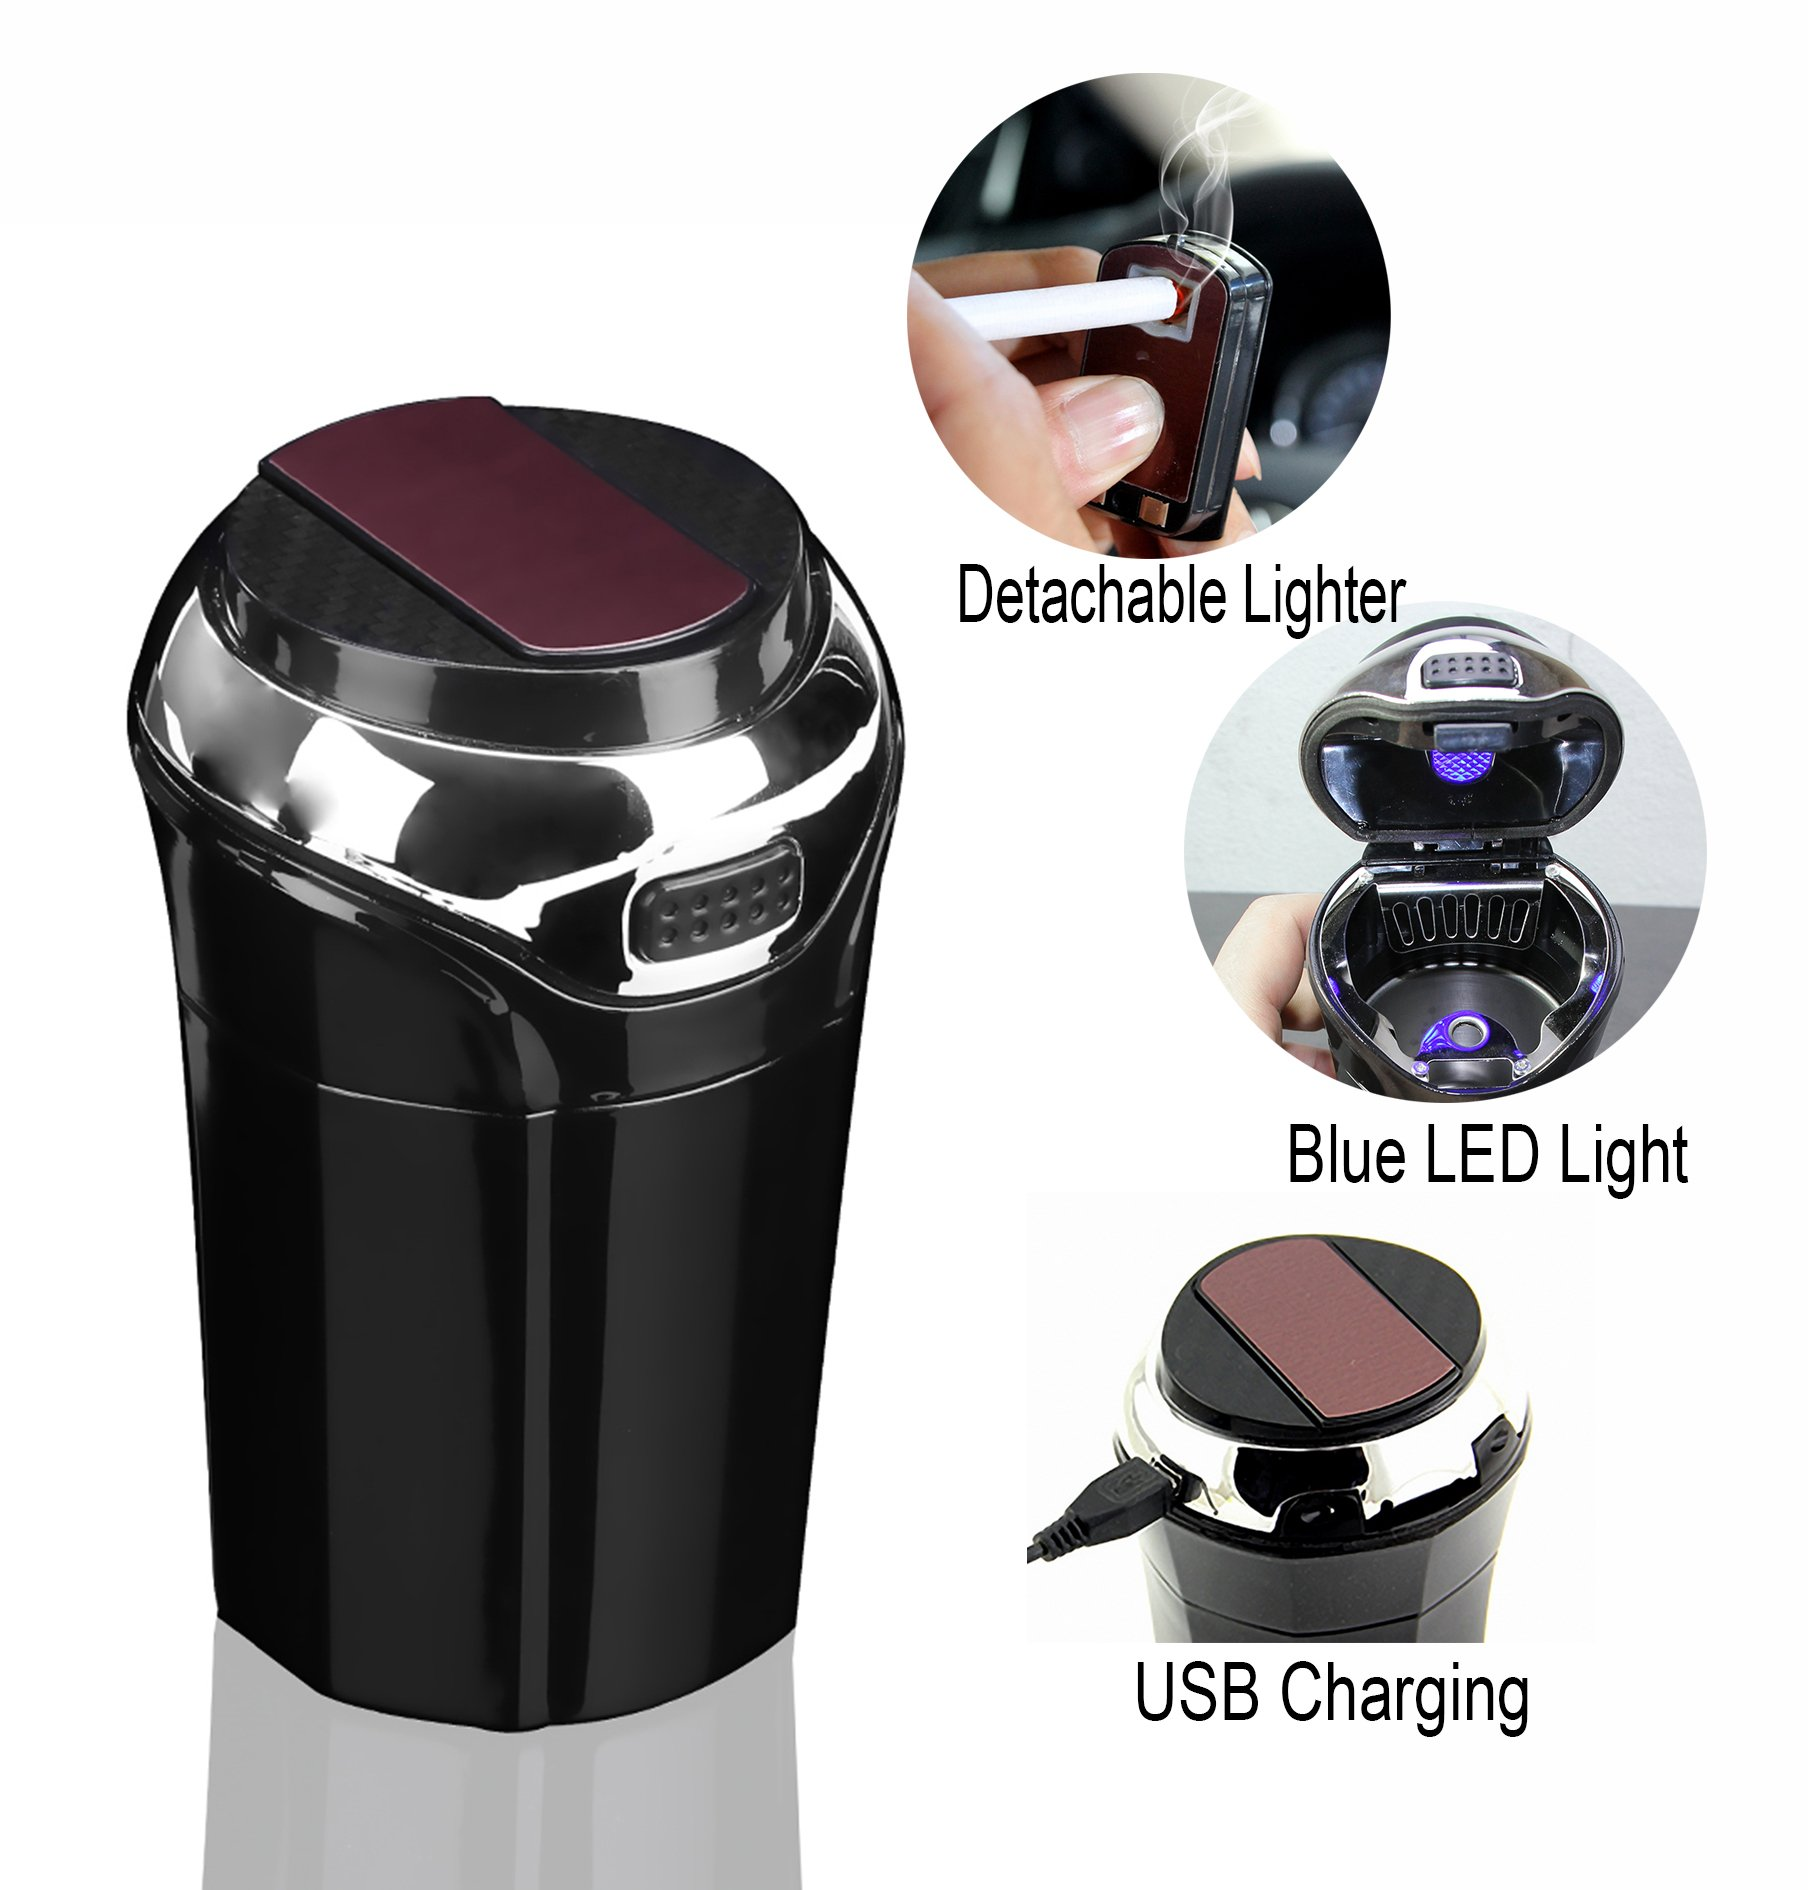 OUYIA Car Ashtray for Most Car Cup Holder, Smokeless Ashtray Cup with Lid Blue LED Light and Detachable Electronic Lighter Suitable for Home&Office (Silver/Black)